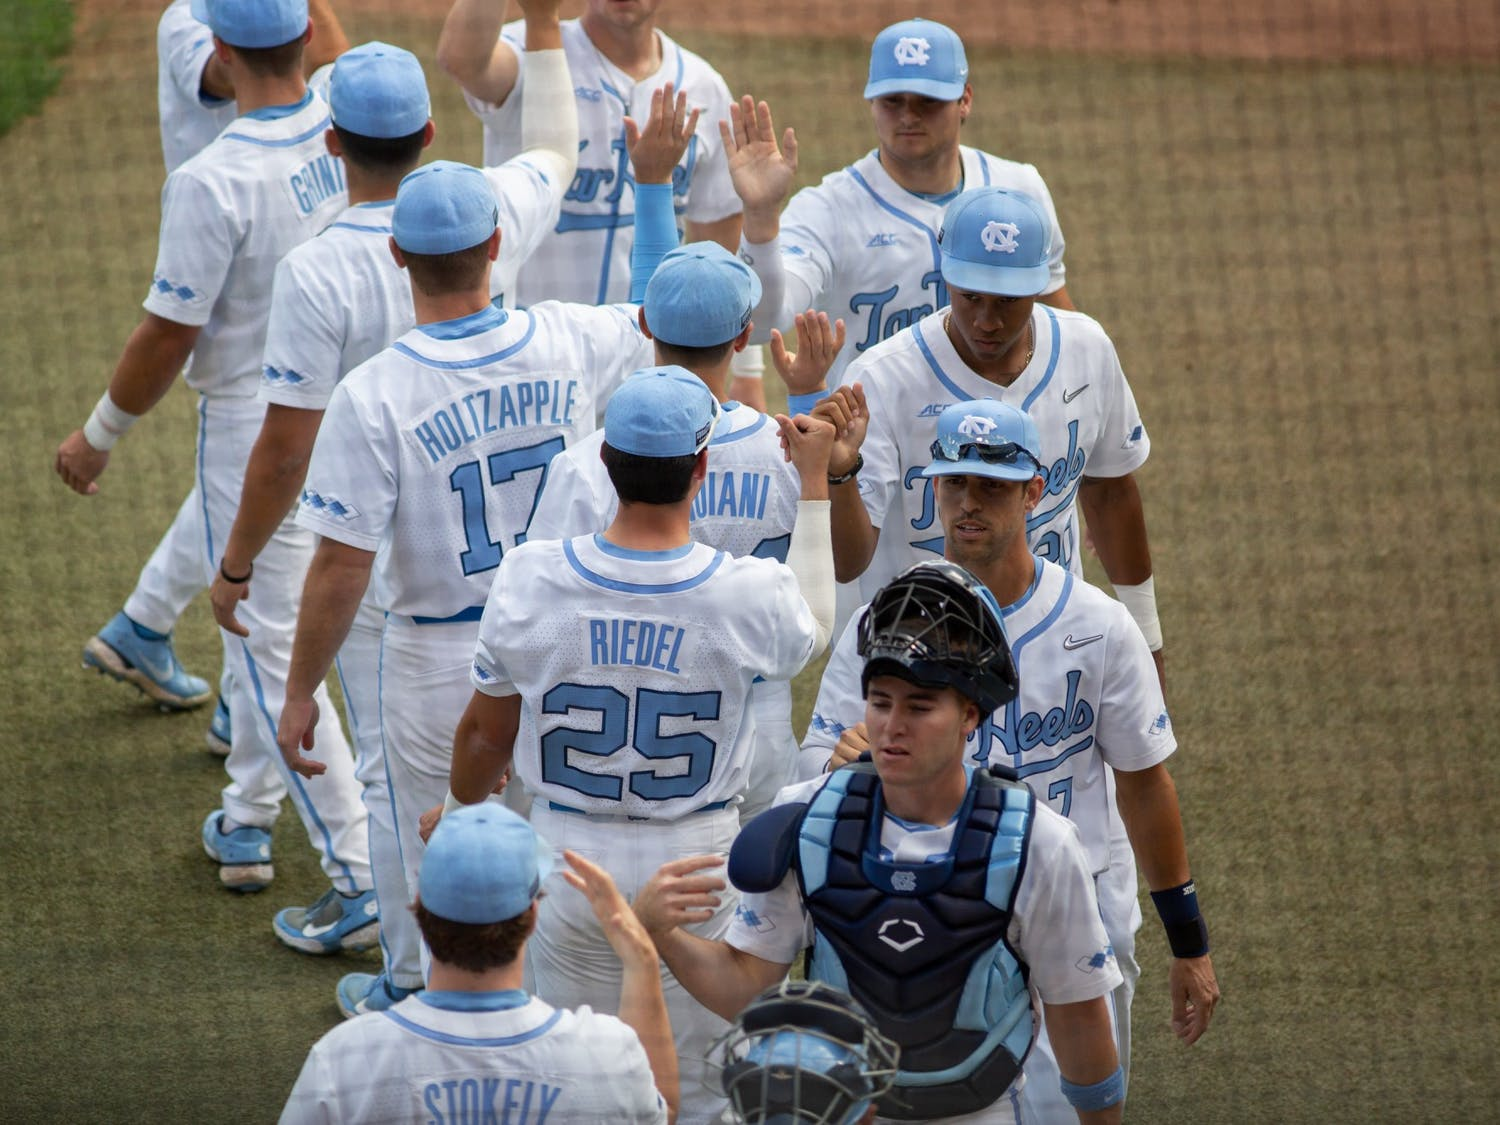 The UNC Baseball team gives each other high fives in preparation for their game against Louisville in Boshamer Stadium on Friday, May 14, 2021. The Tar Heels beat the Cardinals 5-1.